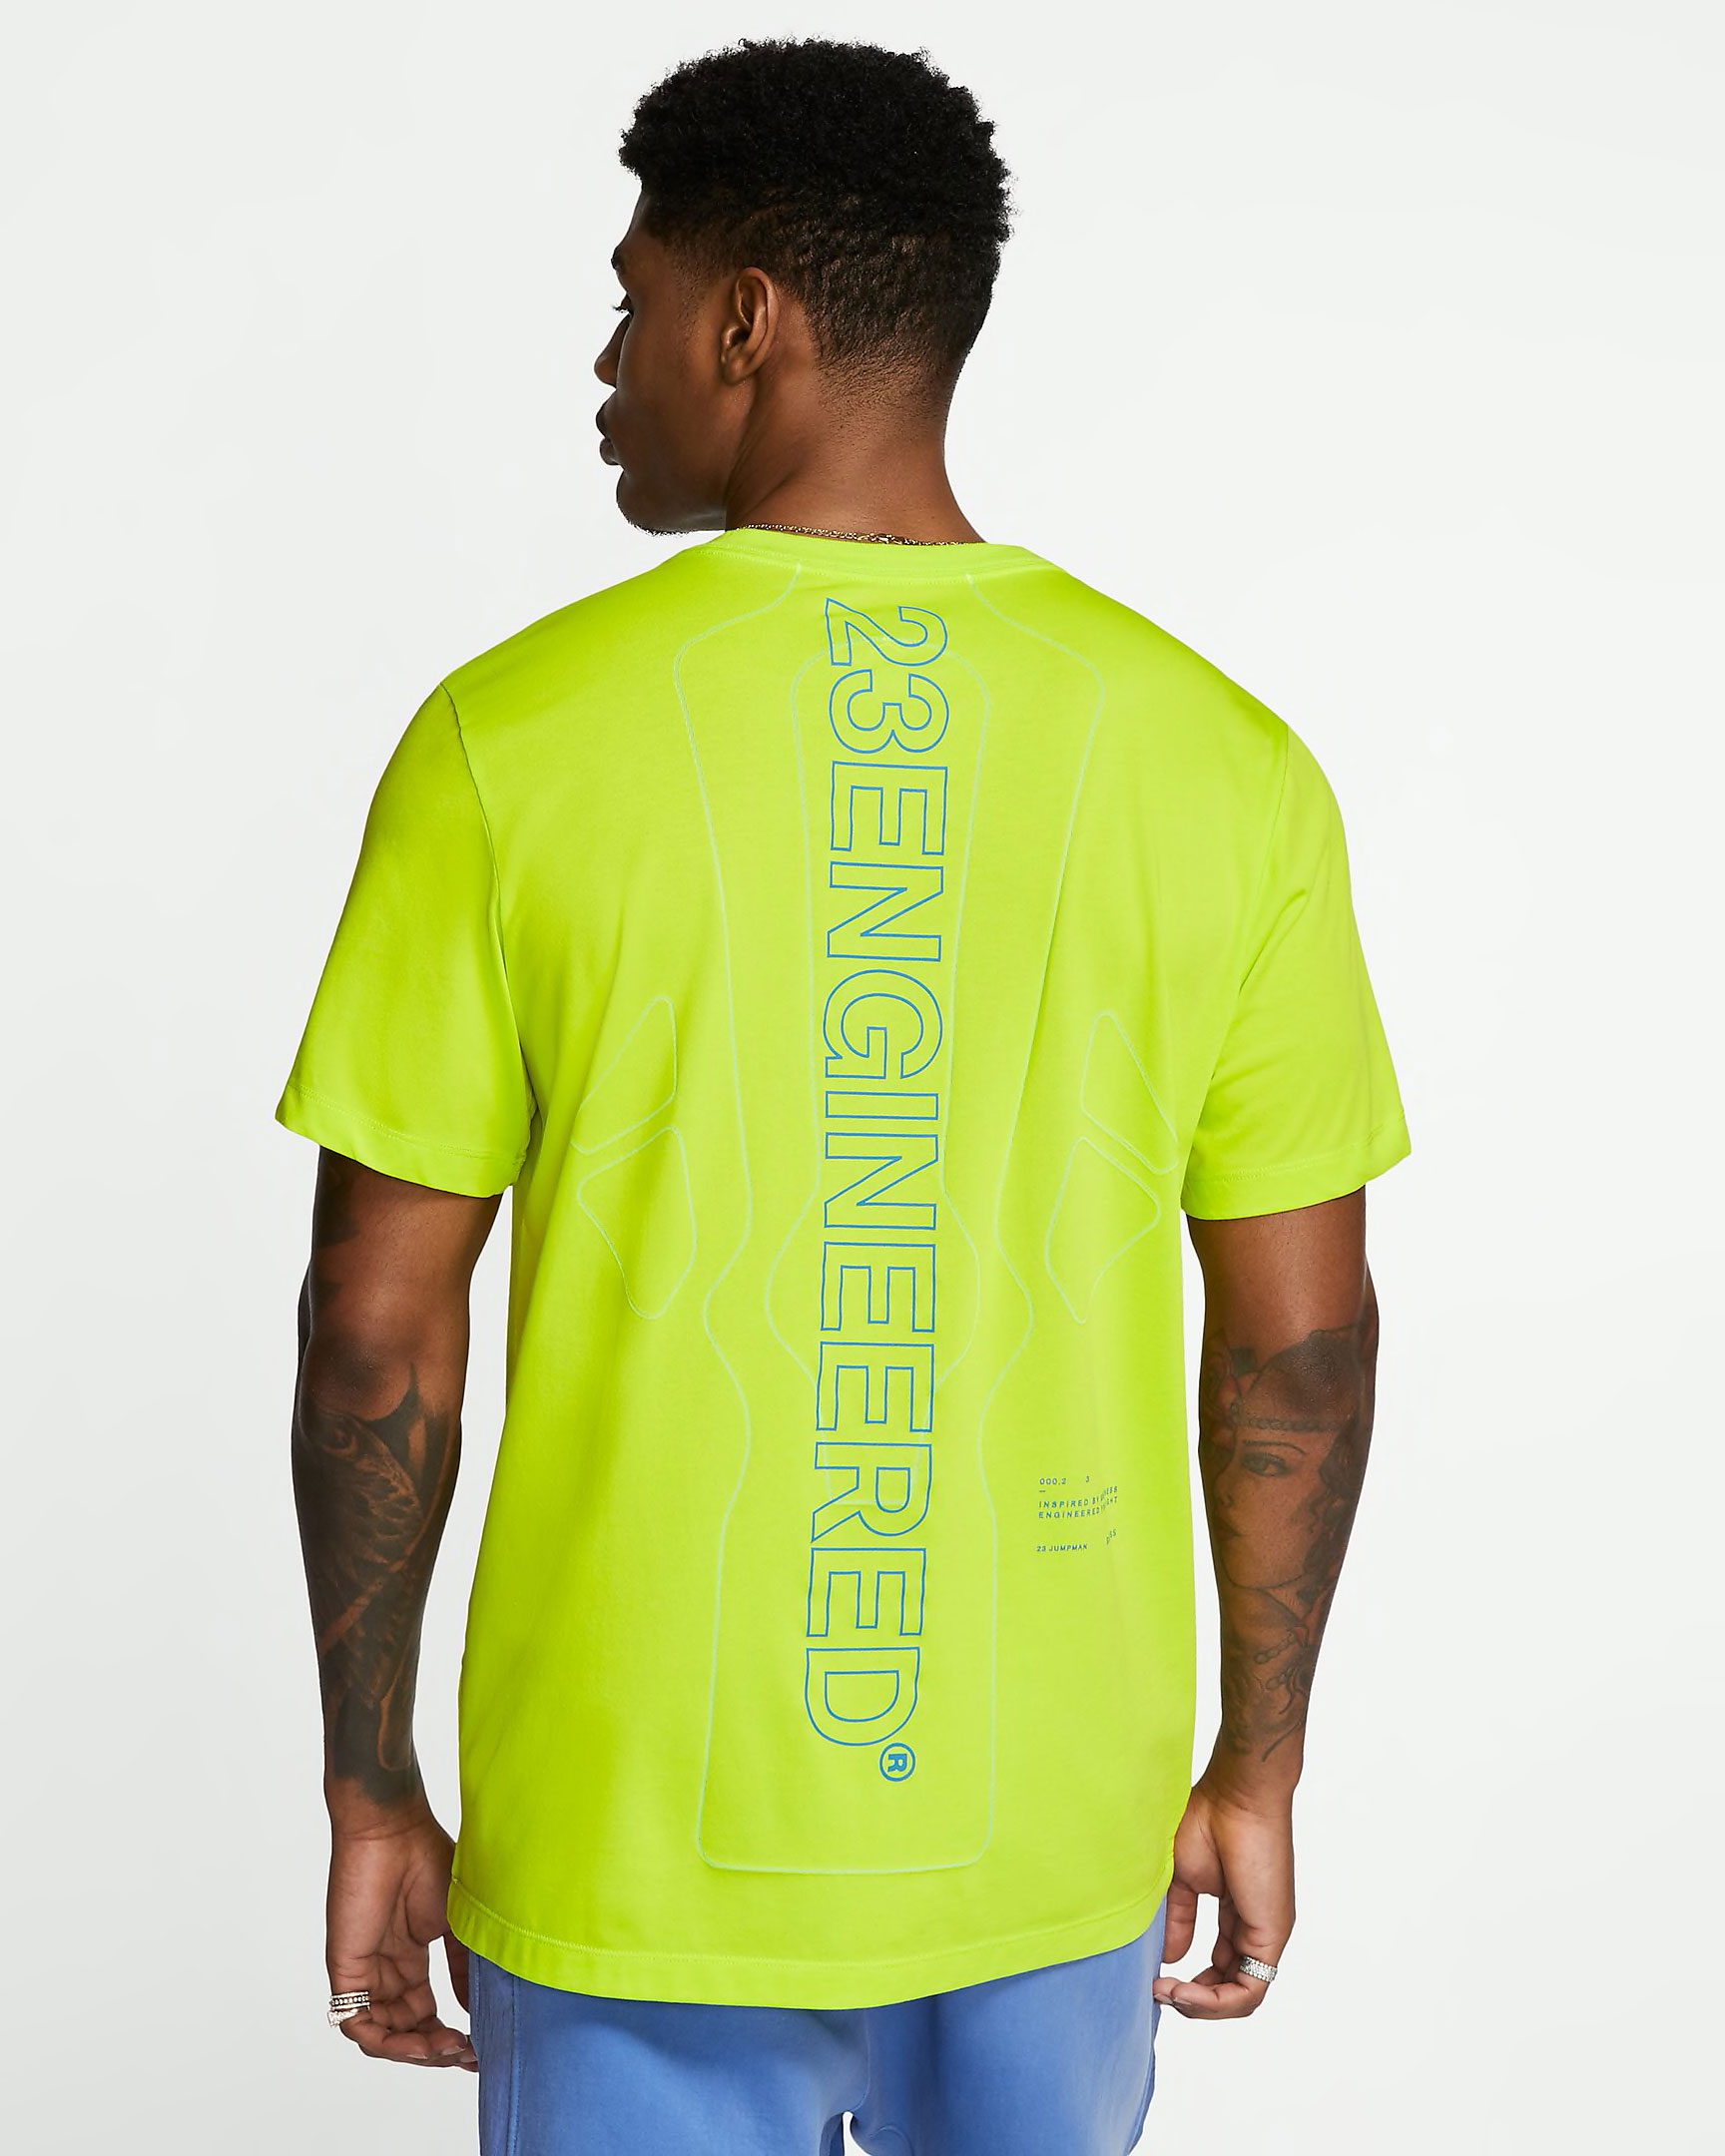 jordan-23-engineered-shirt-cyber-green-2